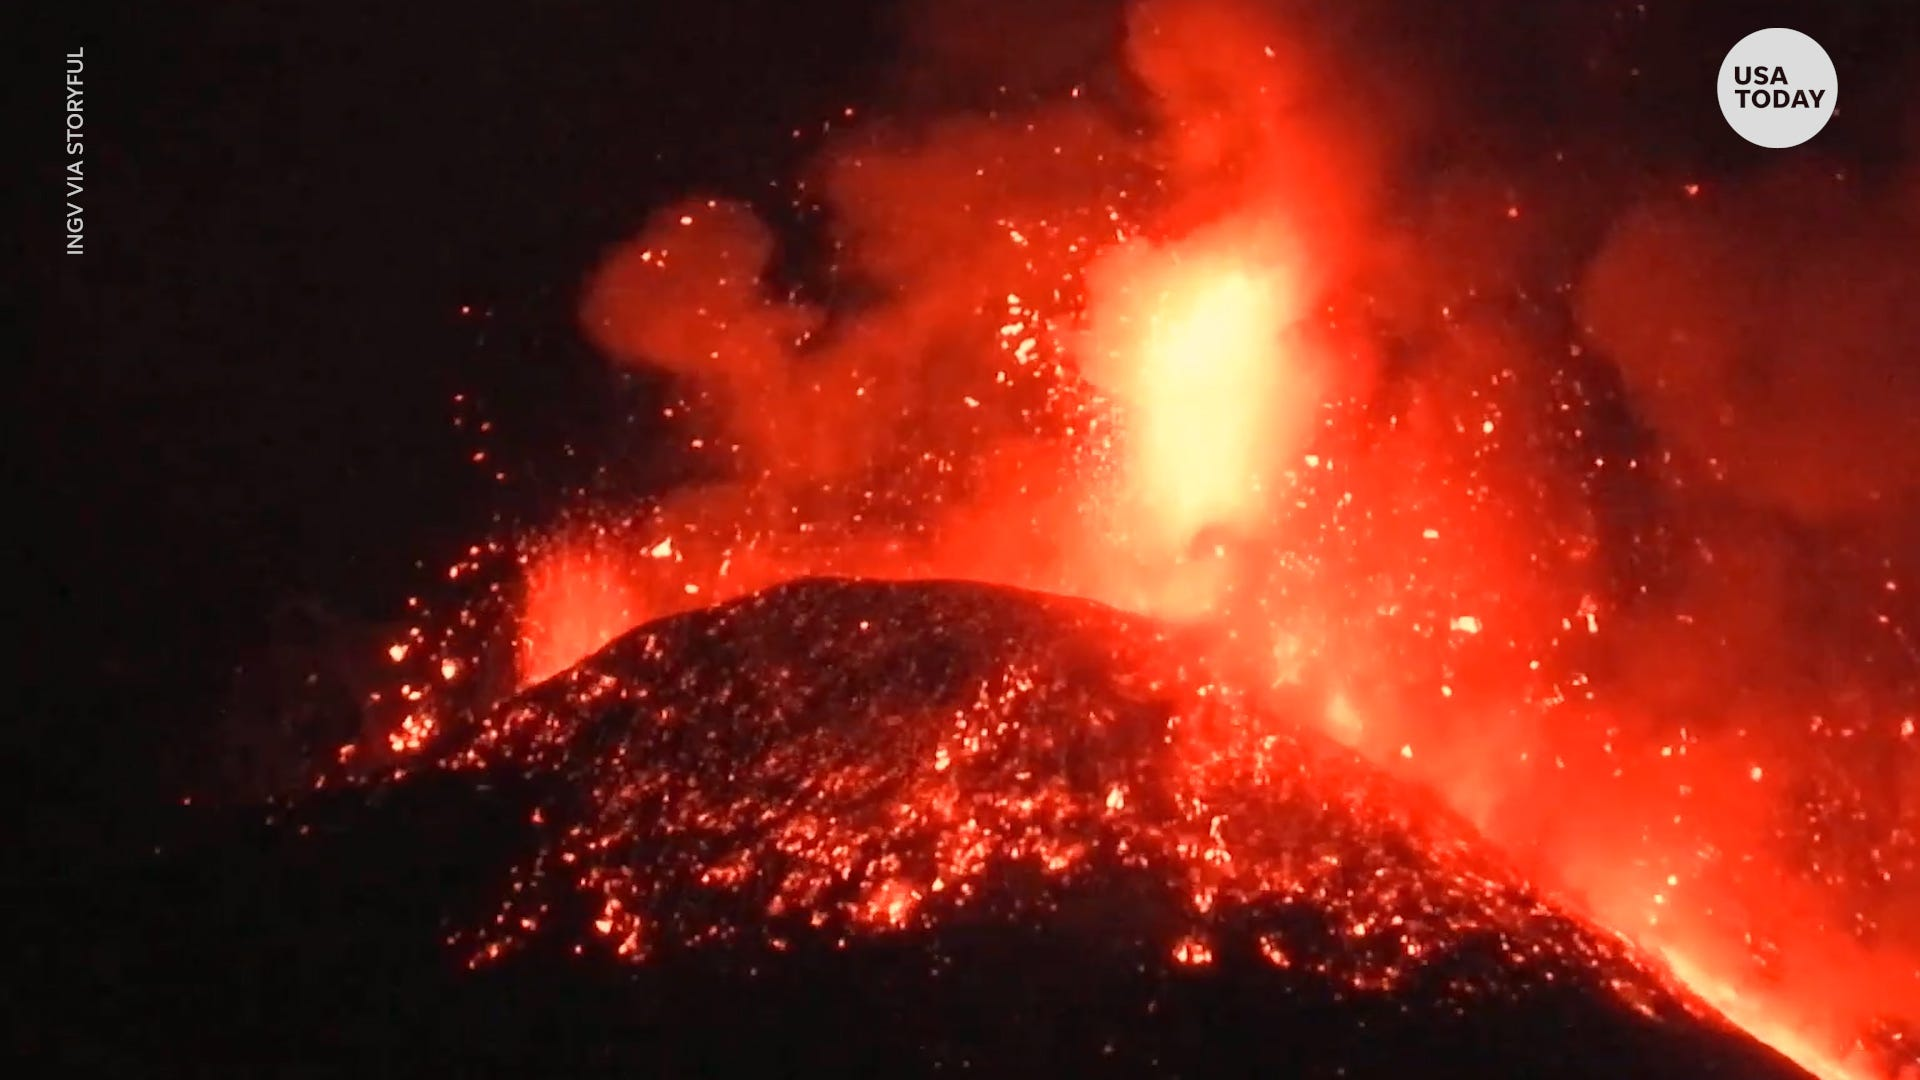 Mount Etna erupts for fourth time in a week with debris shooting over 1 km above volcano